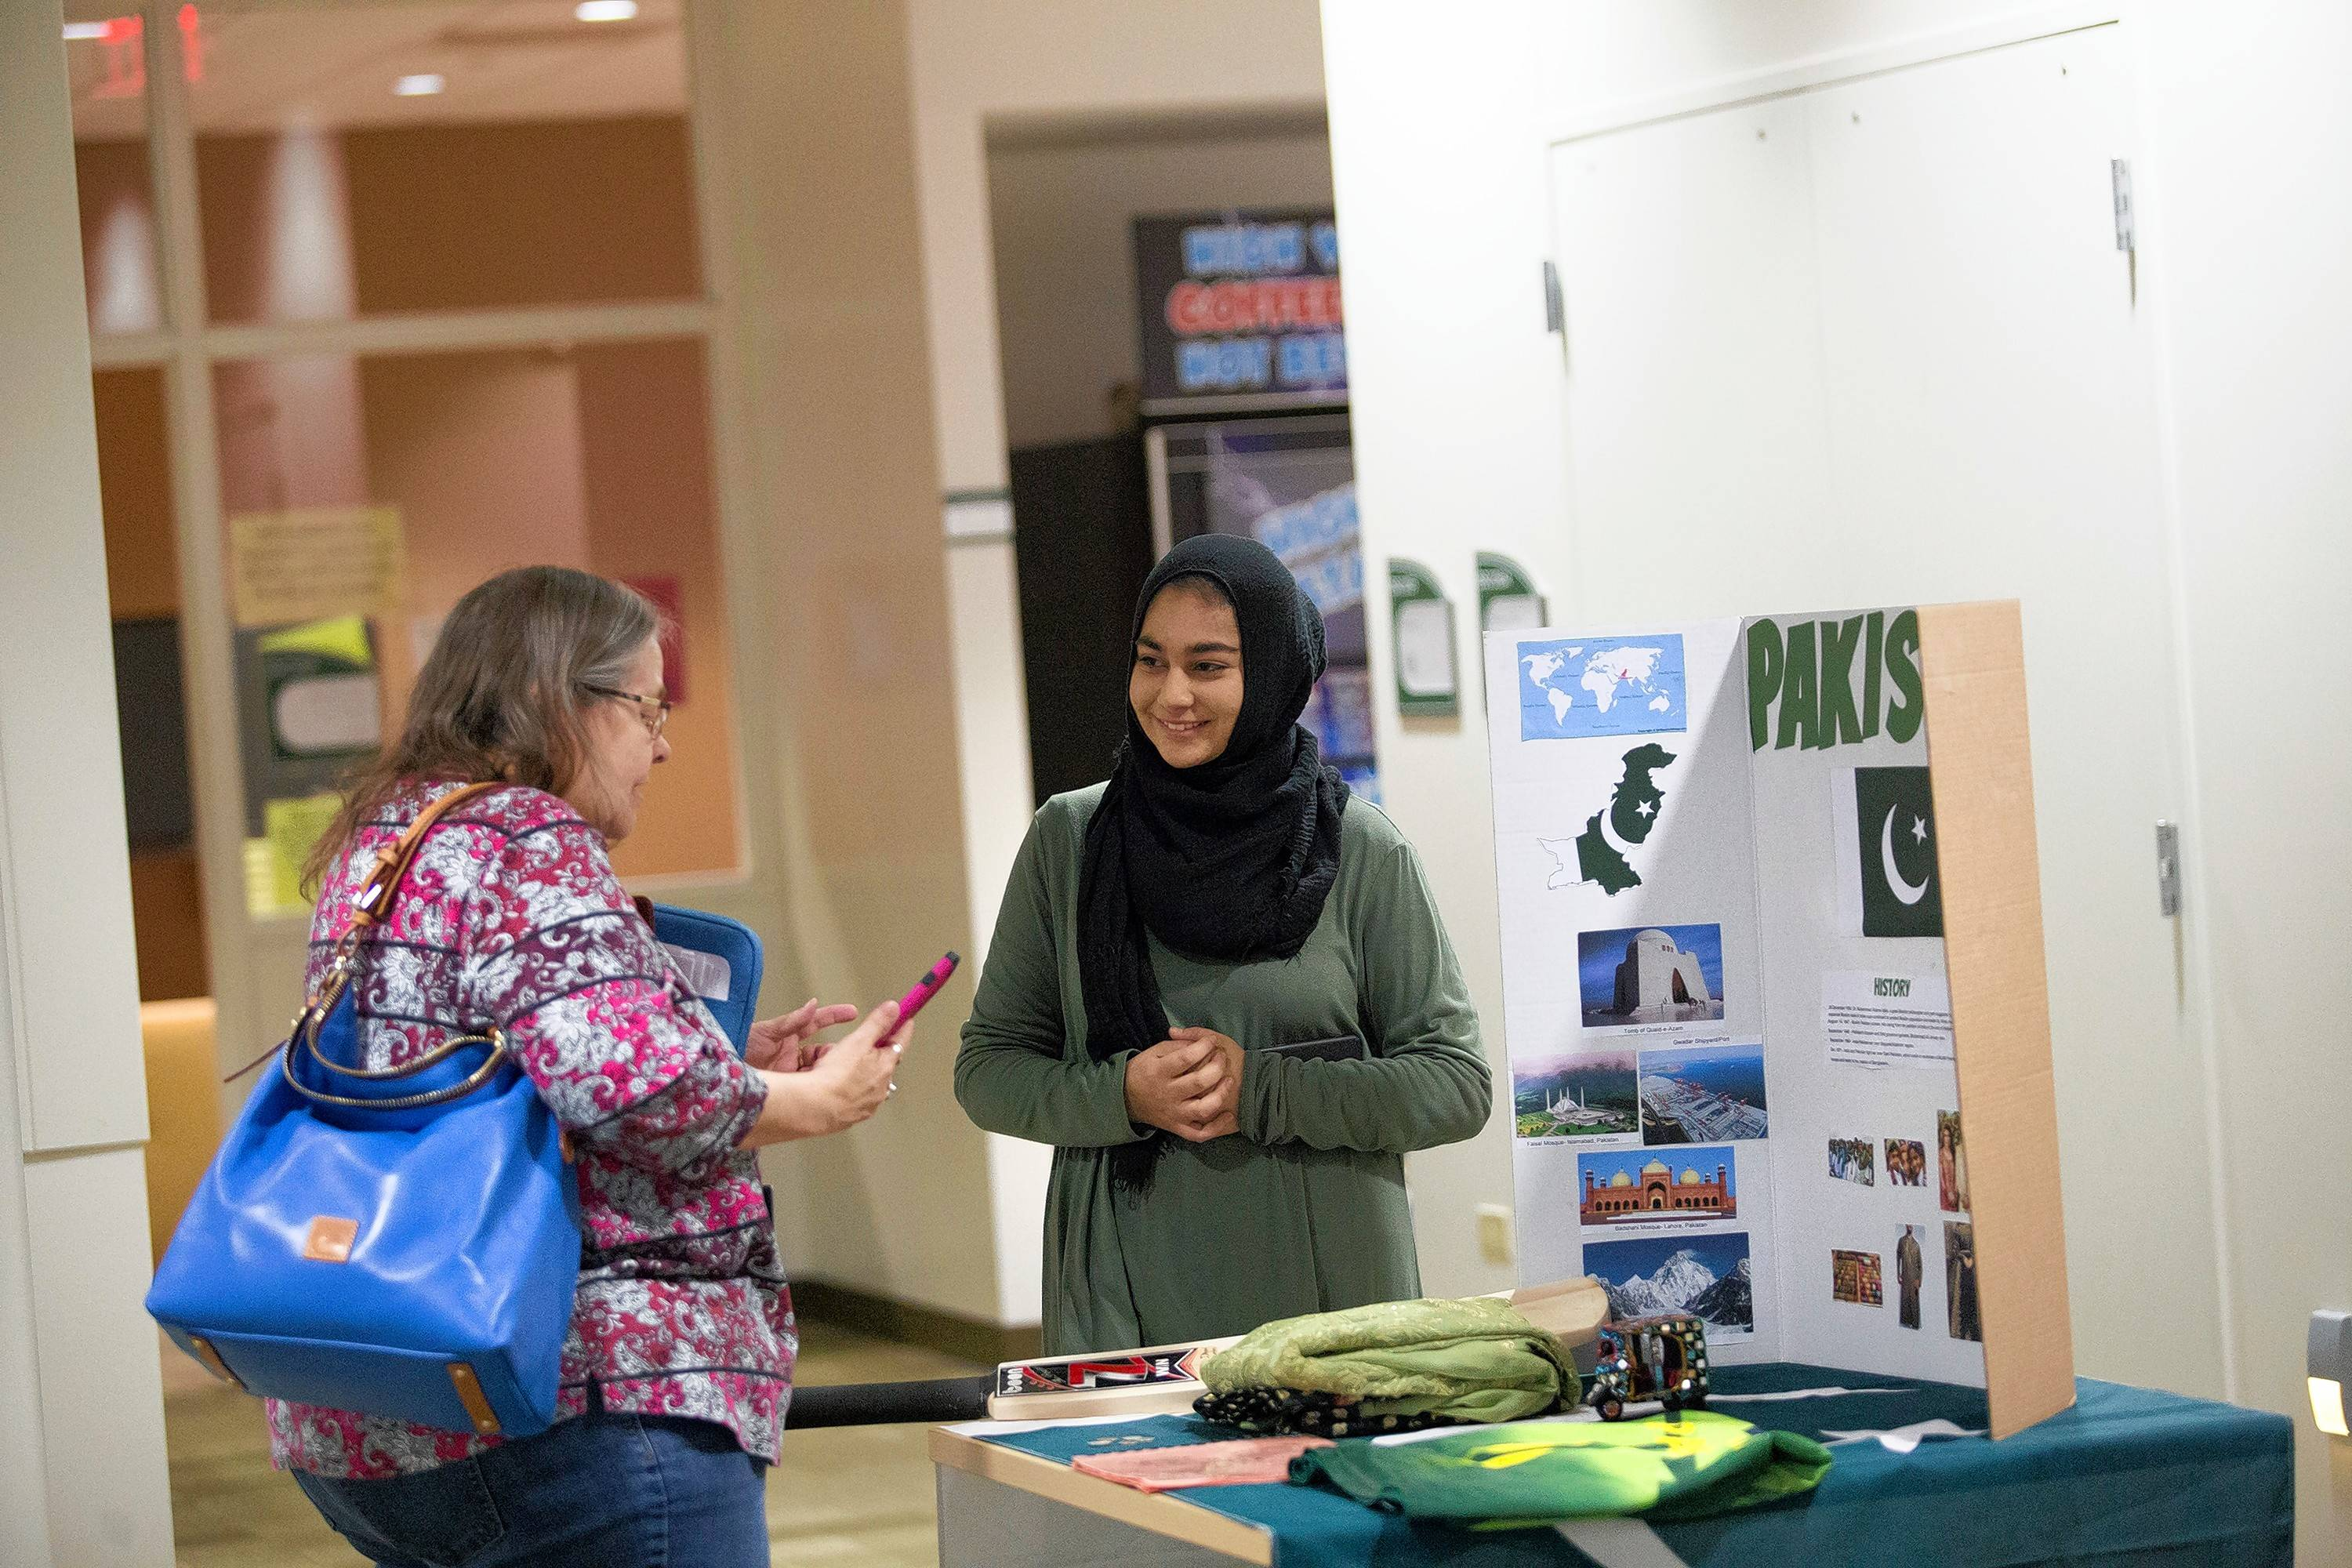 College of DuPage Muslim Students' Association recently held several events designed to educate their peers on the vibrant Islamic culture.